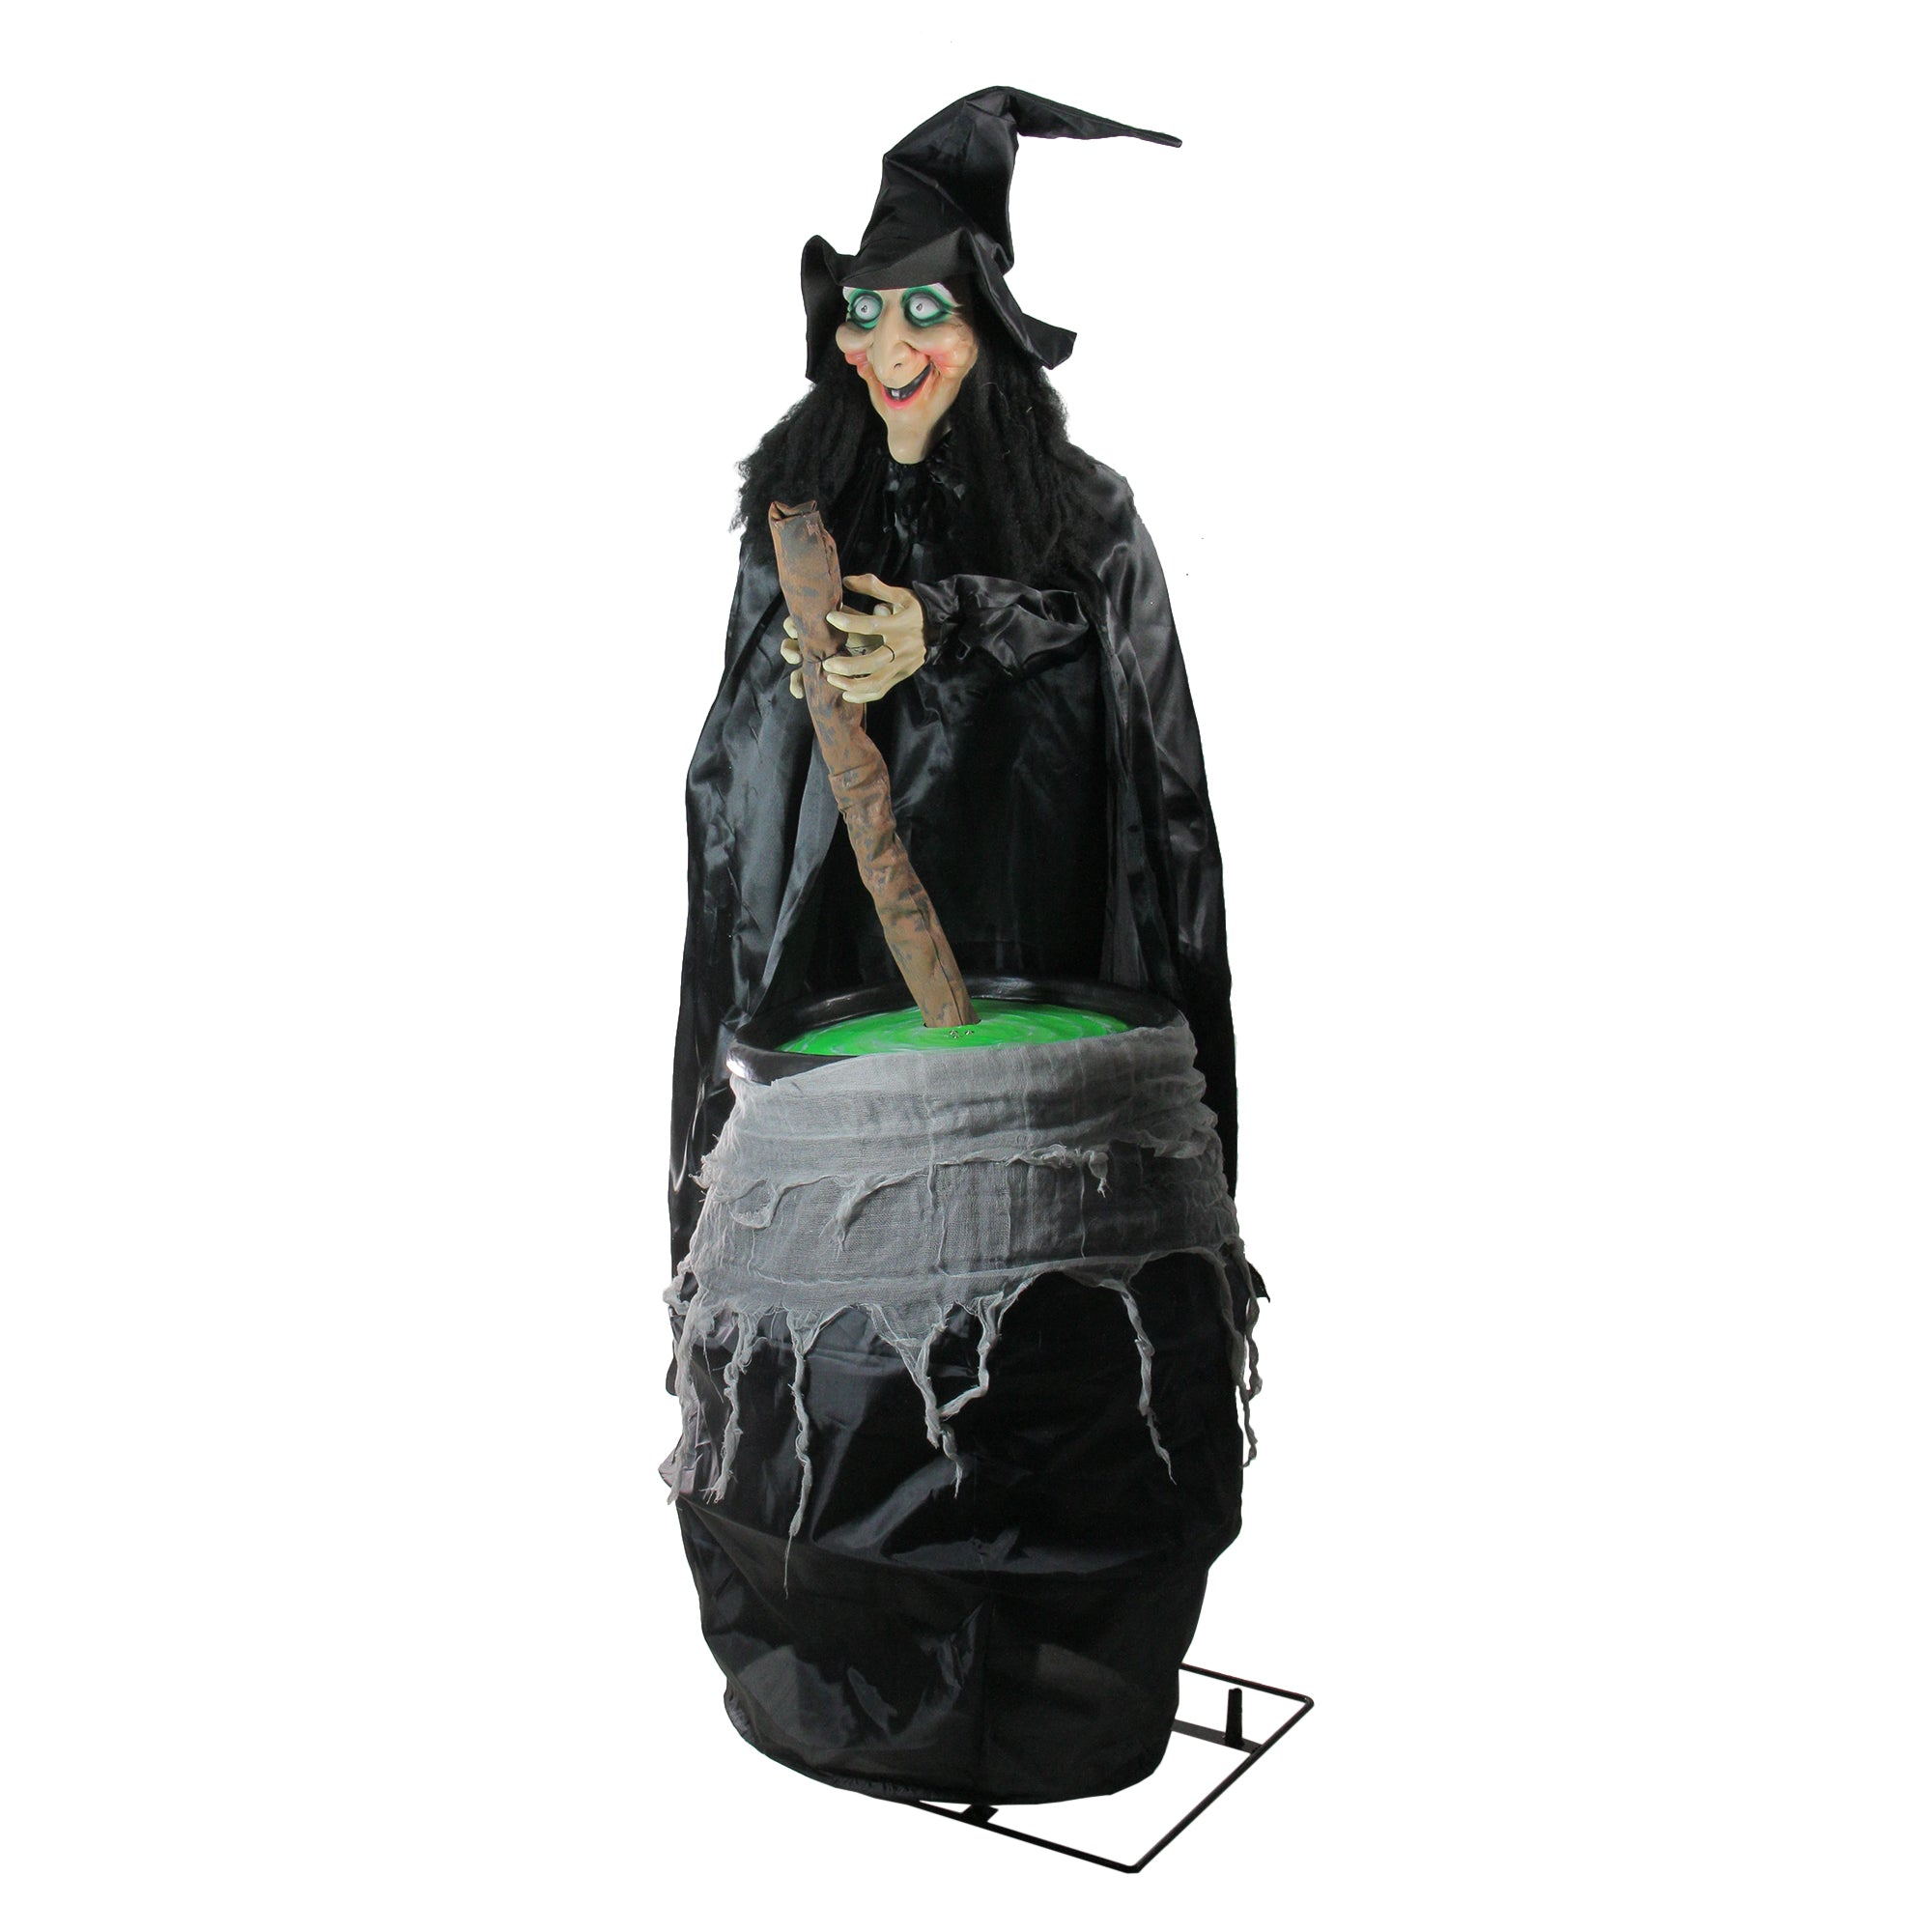 5.5' lighted witch and cauldron animated halloween decoration with